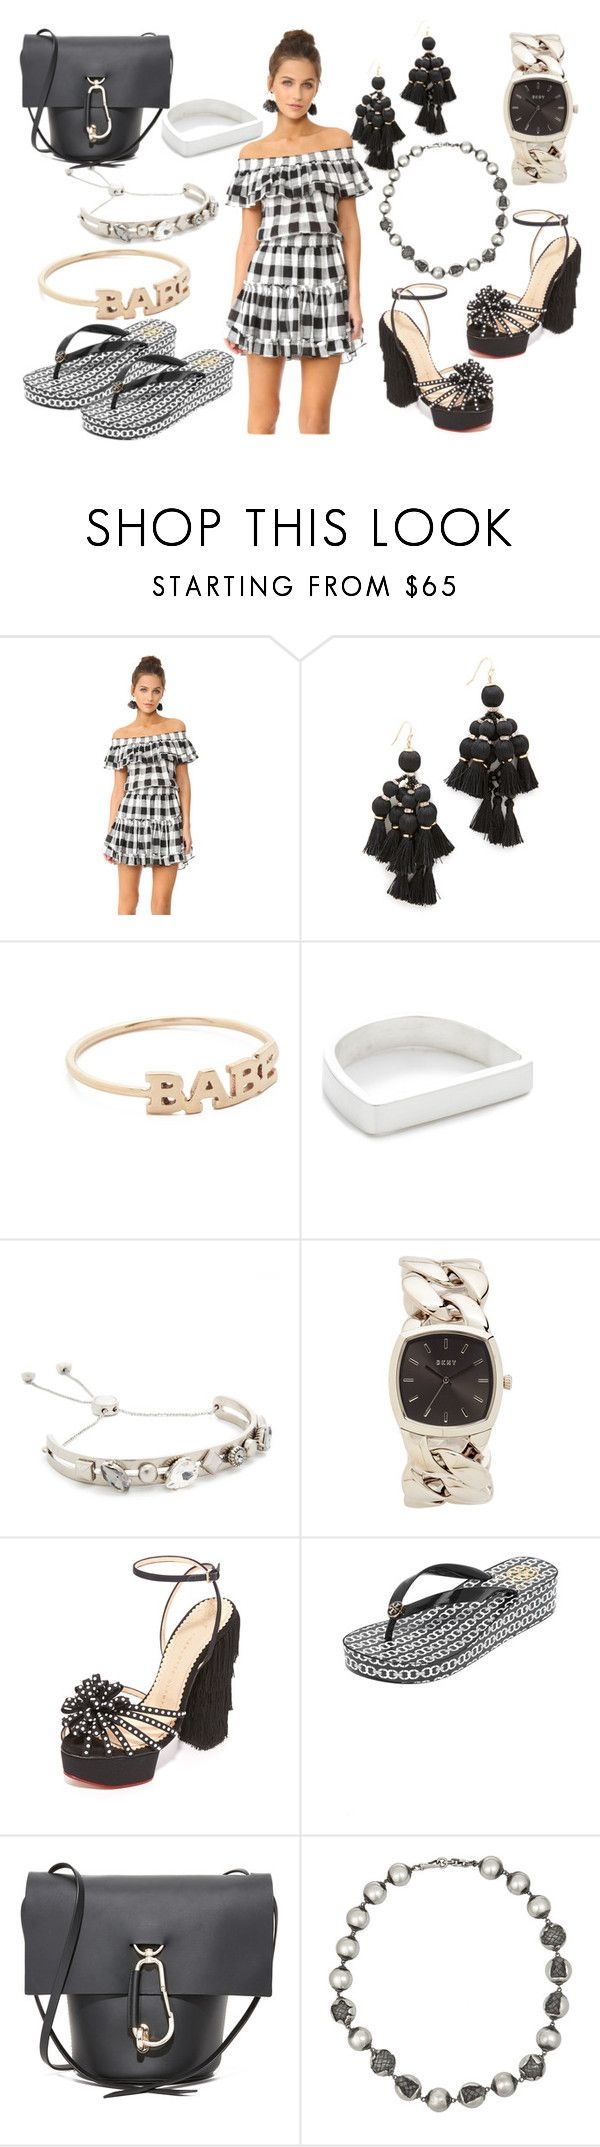 """BABE"" by hillarymaguire ❤ liked on Polyvore featuring Misa, Kate Spade, ZoÃ« Chicco, Maya Magal, Marc Jacobs, DKNY, Charlotte Olympia, Tory Burch, ZAC Zac Posen and Bottega Veneta"